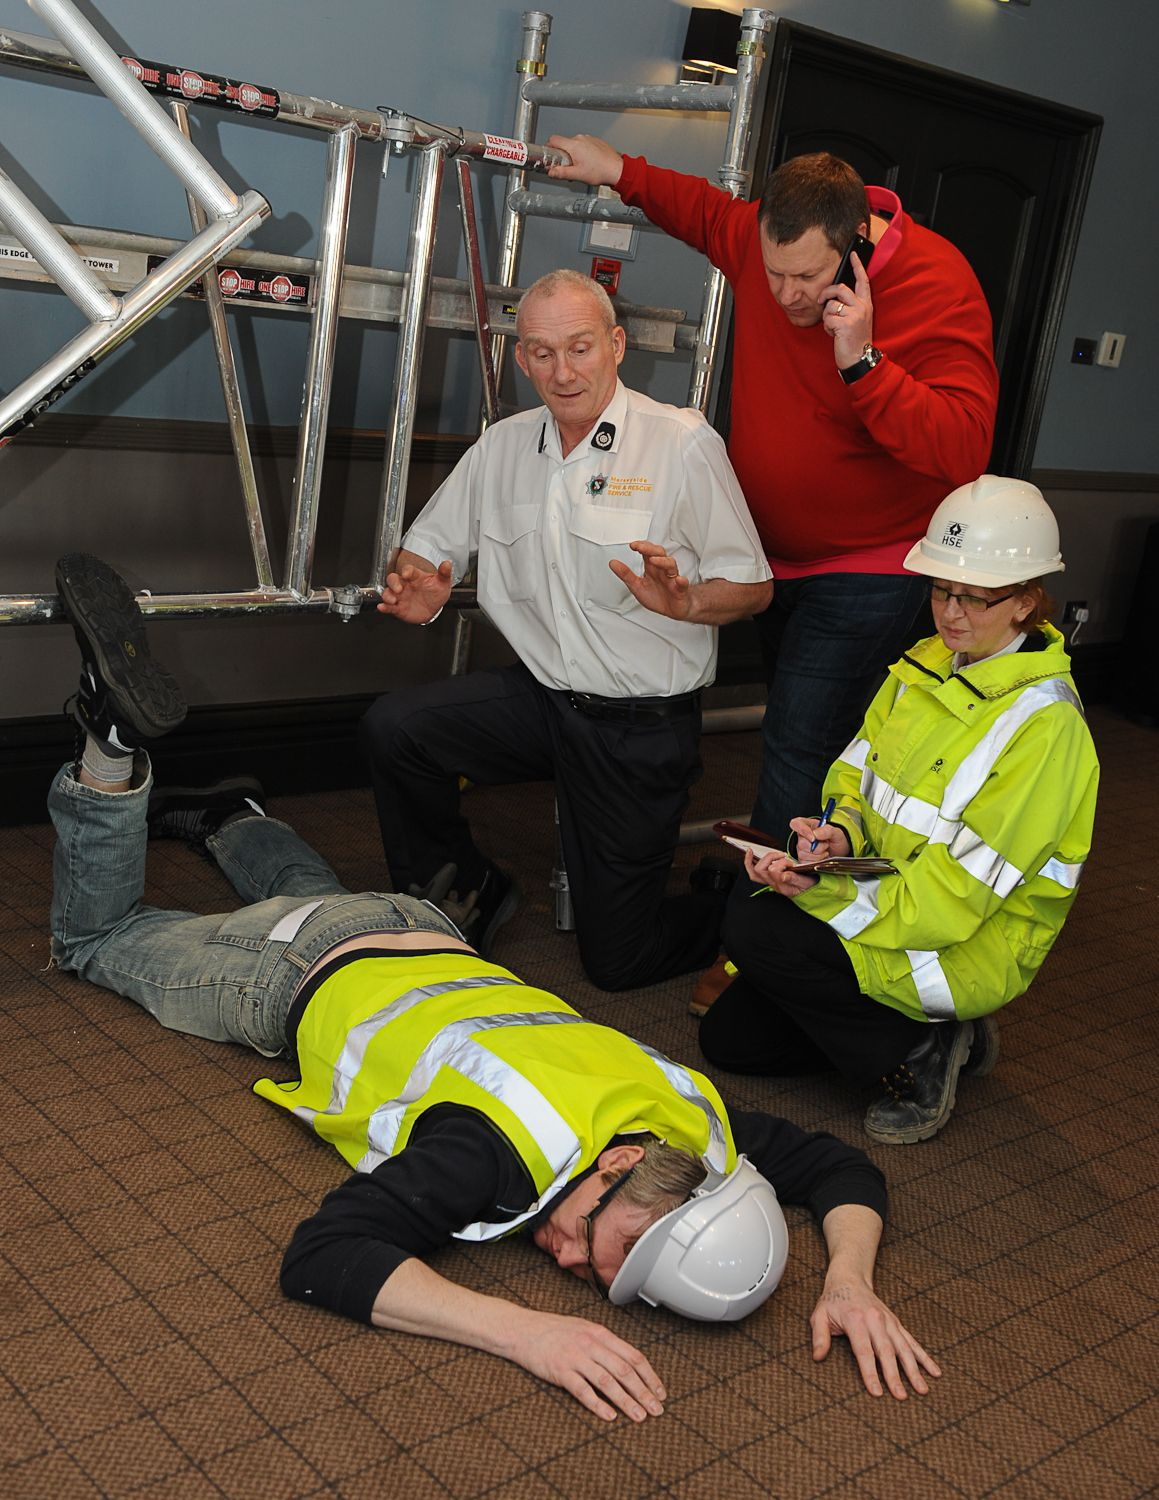 'Mick's' boss 'Pete' (red jumper) attends the scene along with a firefighter and a HSE inspector. 'Pete' knows he will have questions to answer about why 'Mick' was allowed to carry out the work when the tower was unsafe.